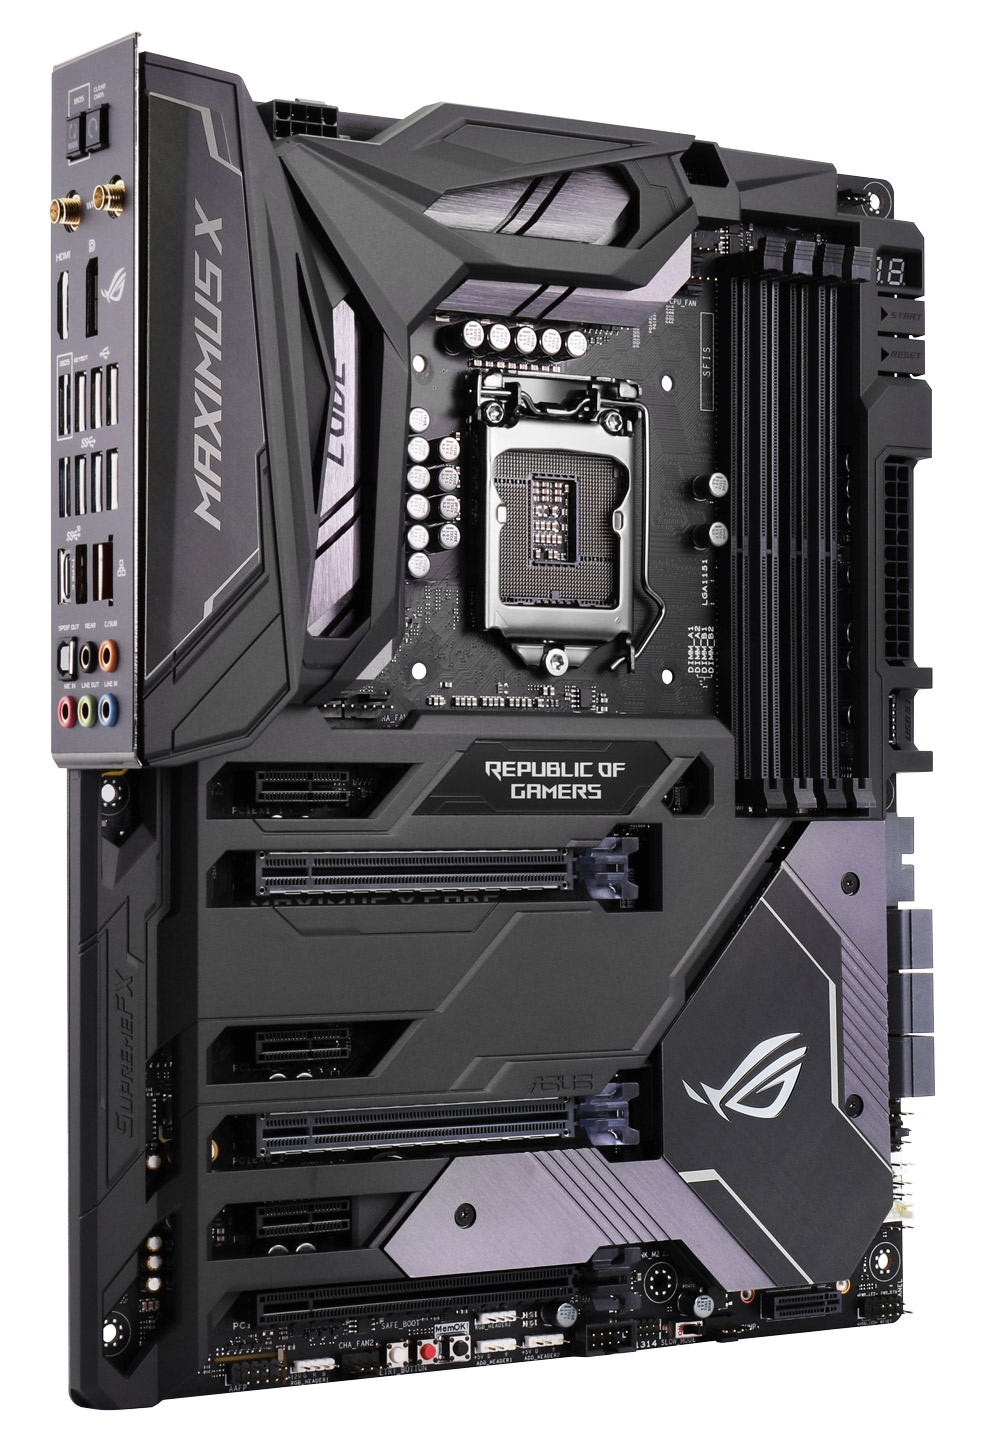 ASUS ROG Maximus X CODE Z370 Motherboard - Best Deal - South Africa